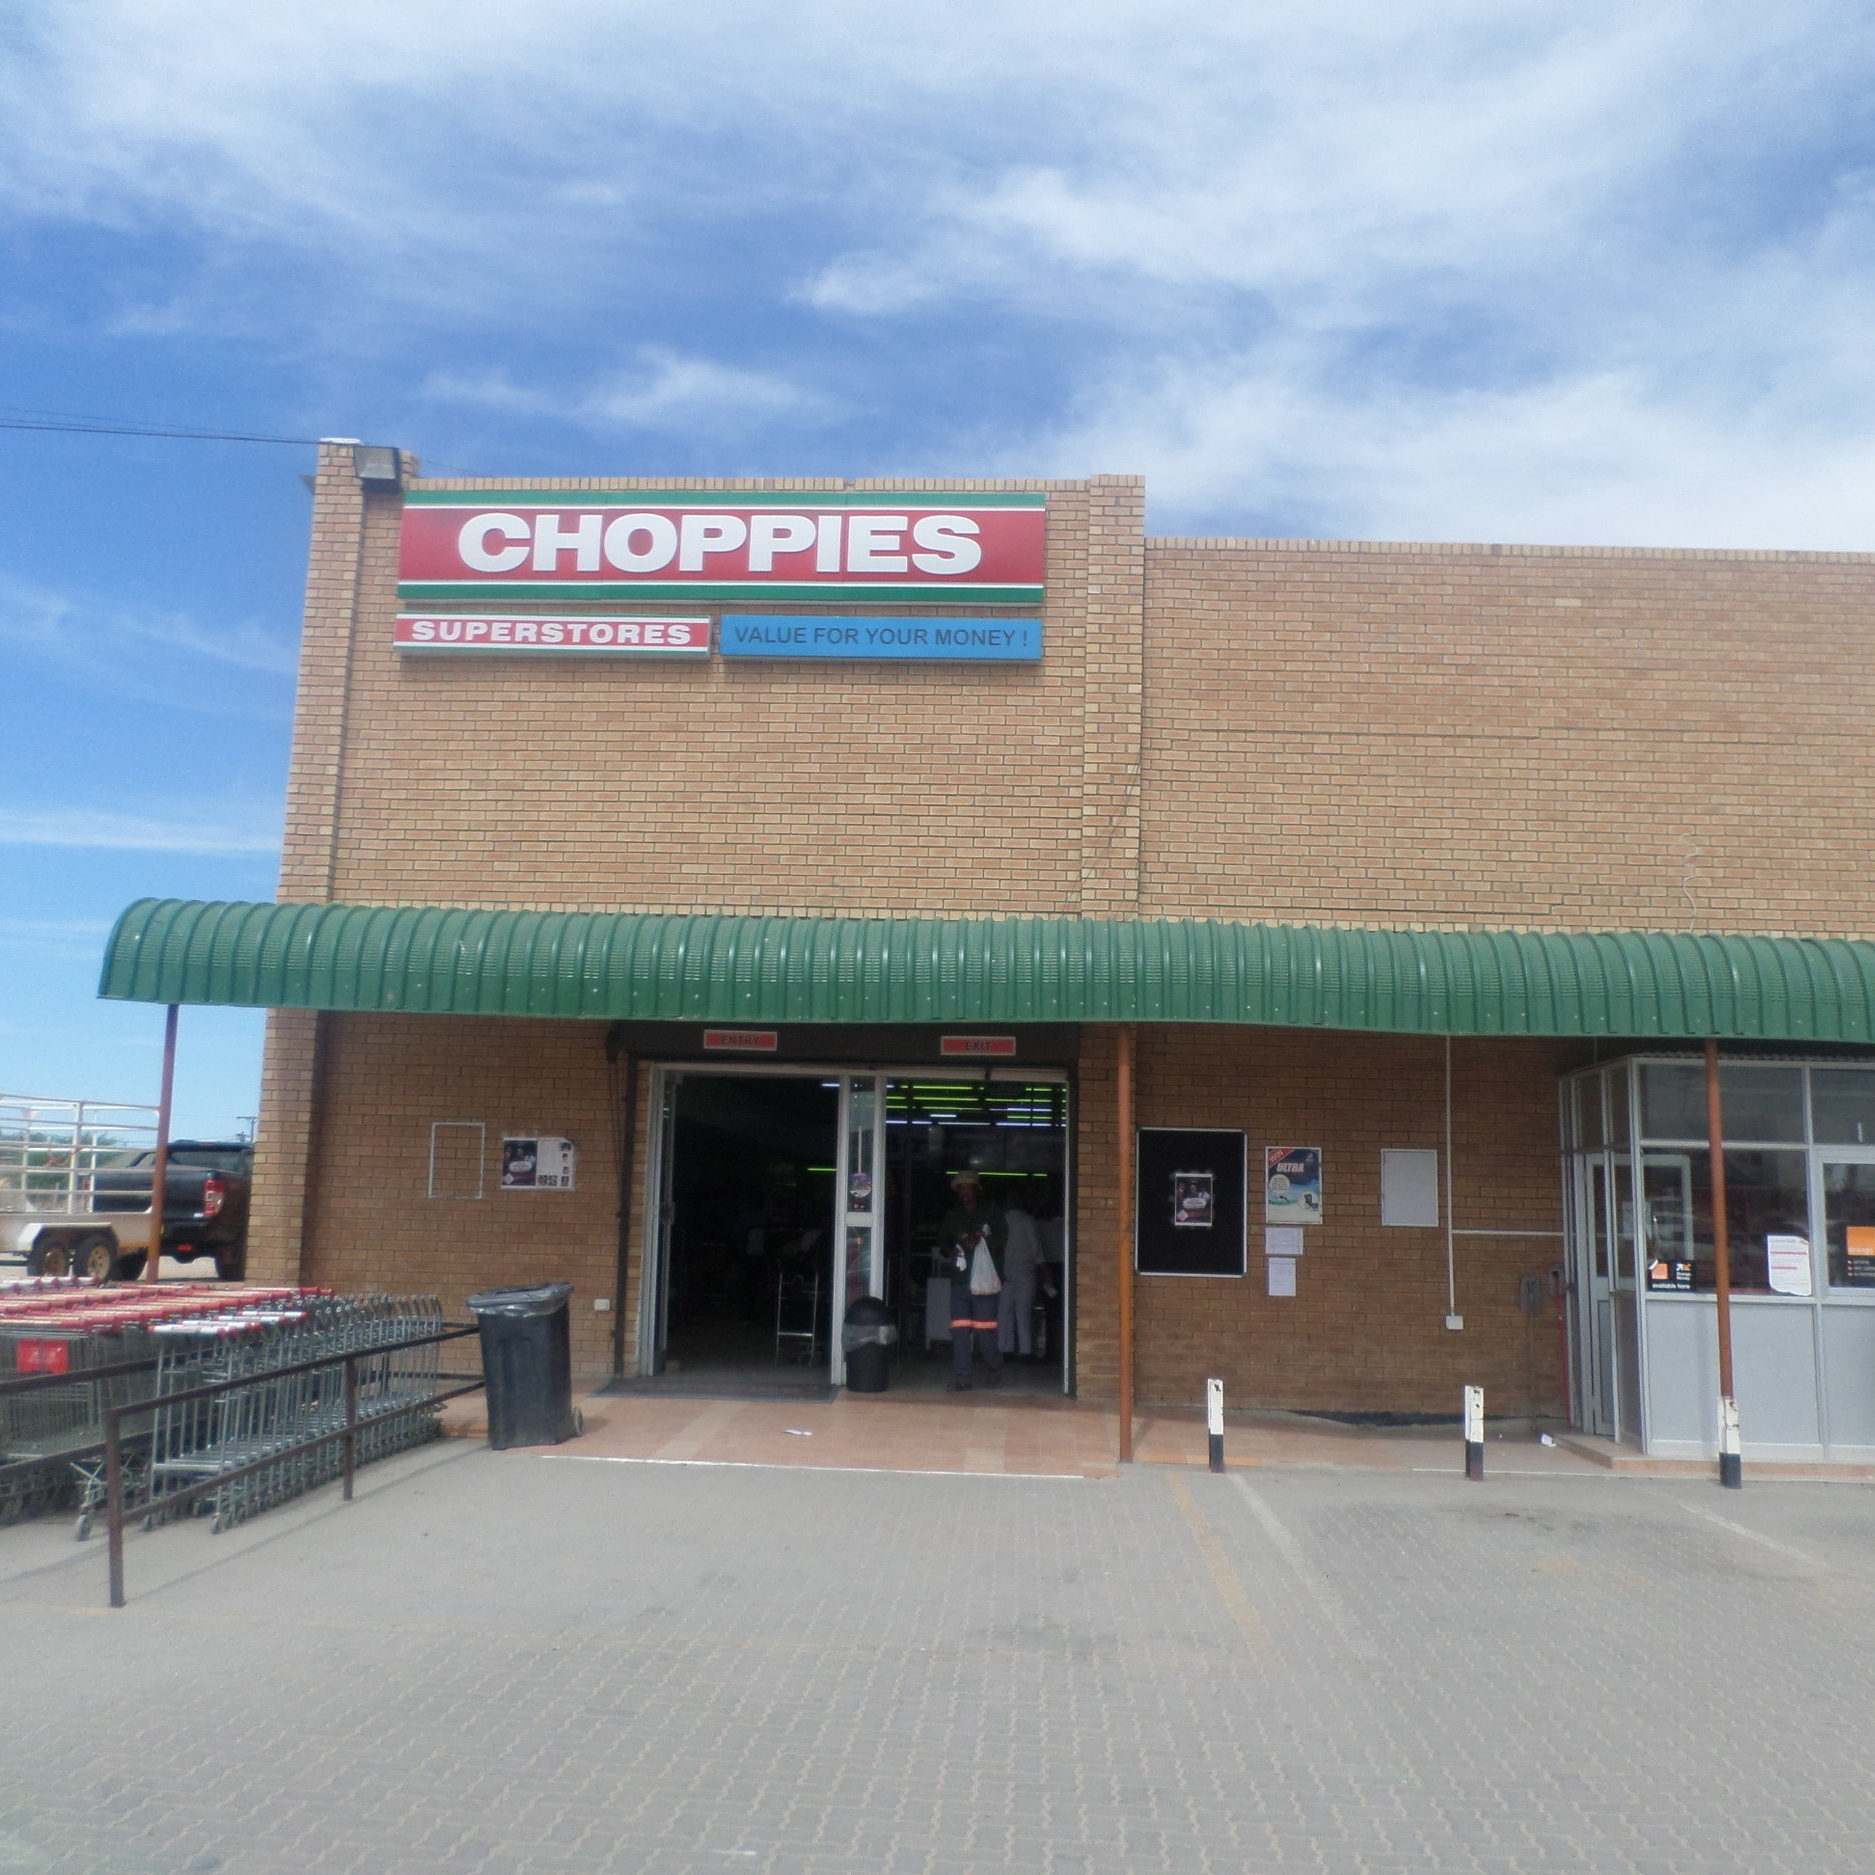 Choppies Superstores - Service Description∙ Groceries , foods, airtime, stationaries, butchery and fresh produce.Opening Hours:Monday - Friday: 08:00-20:00Saturday: 08:00-20:00Sunday: -Directions:Modimo WardContact:📞 (+267) 59 43 700✎ crystalchine@choppies.co.bw